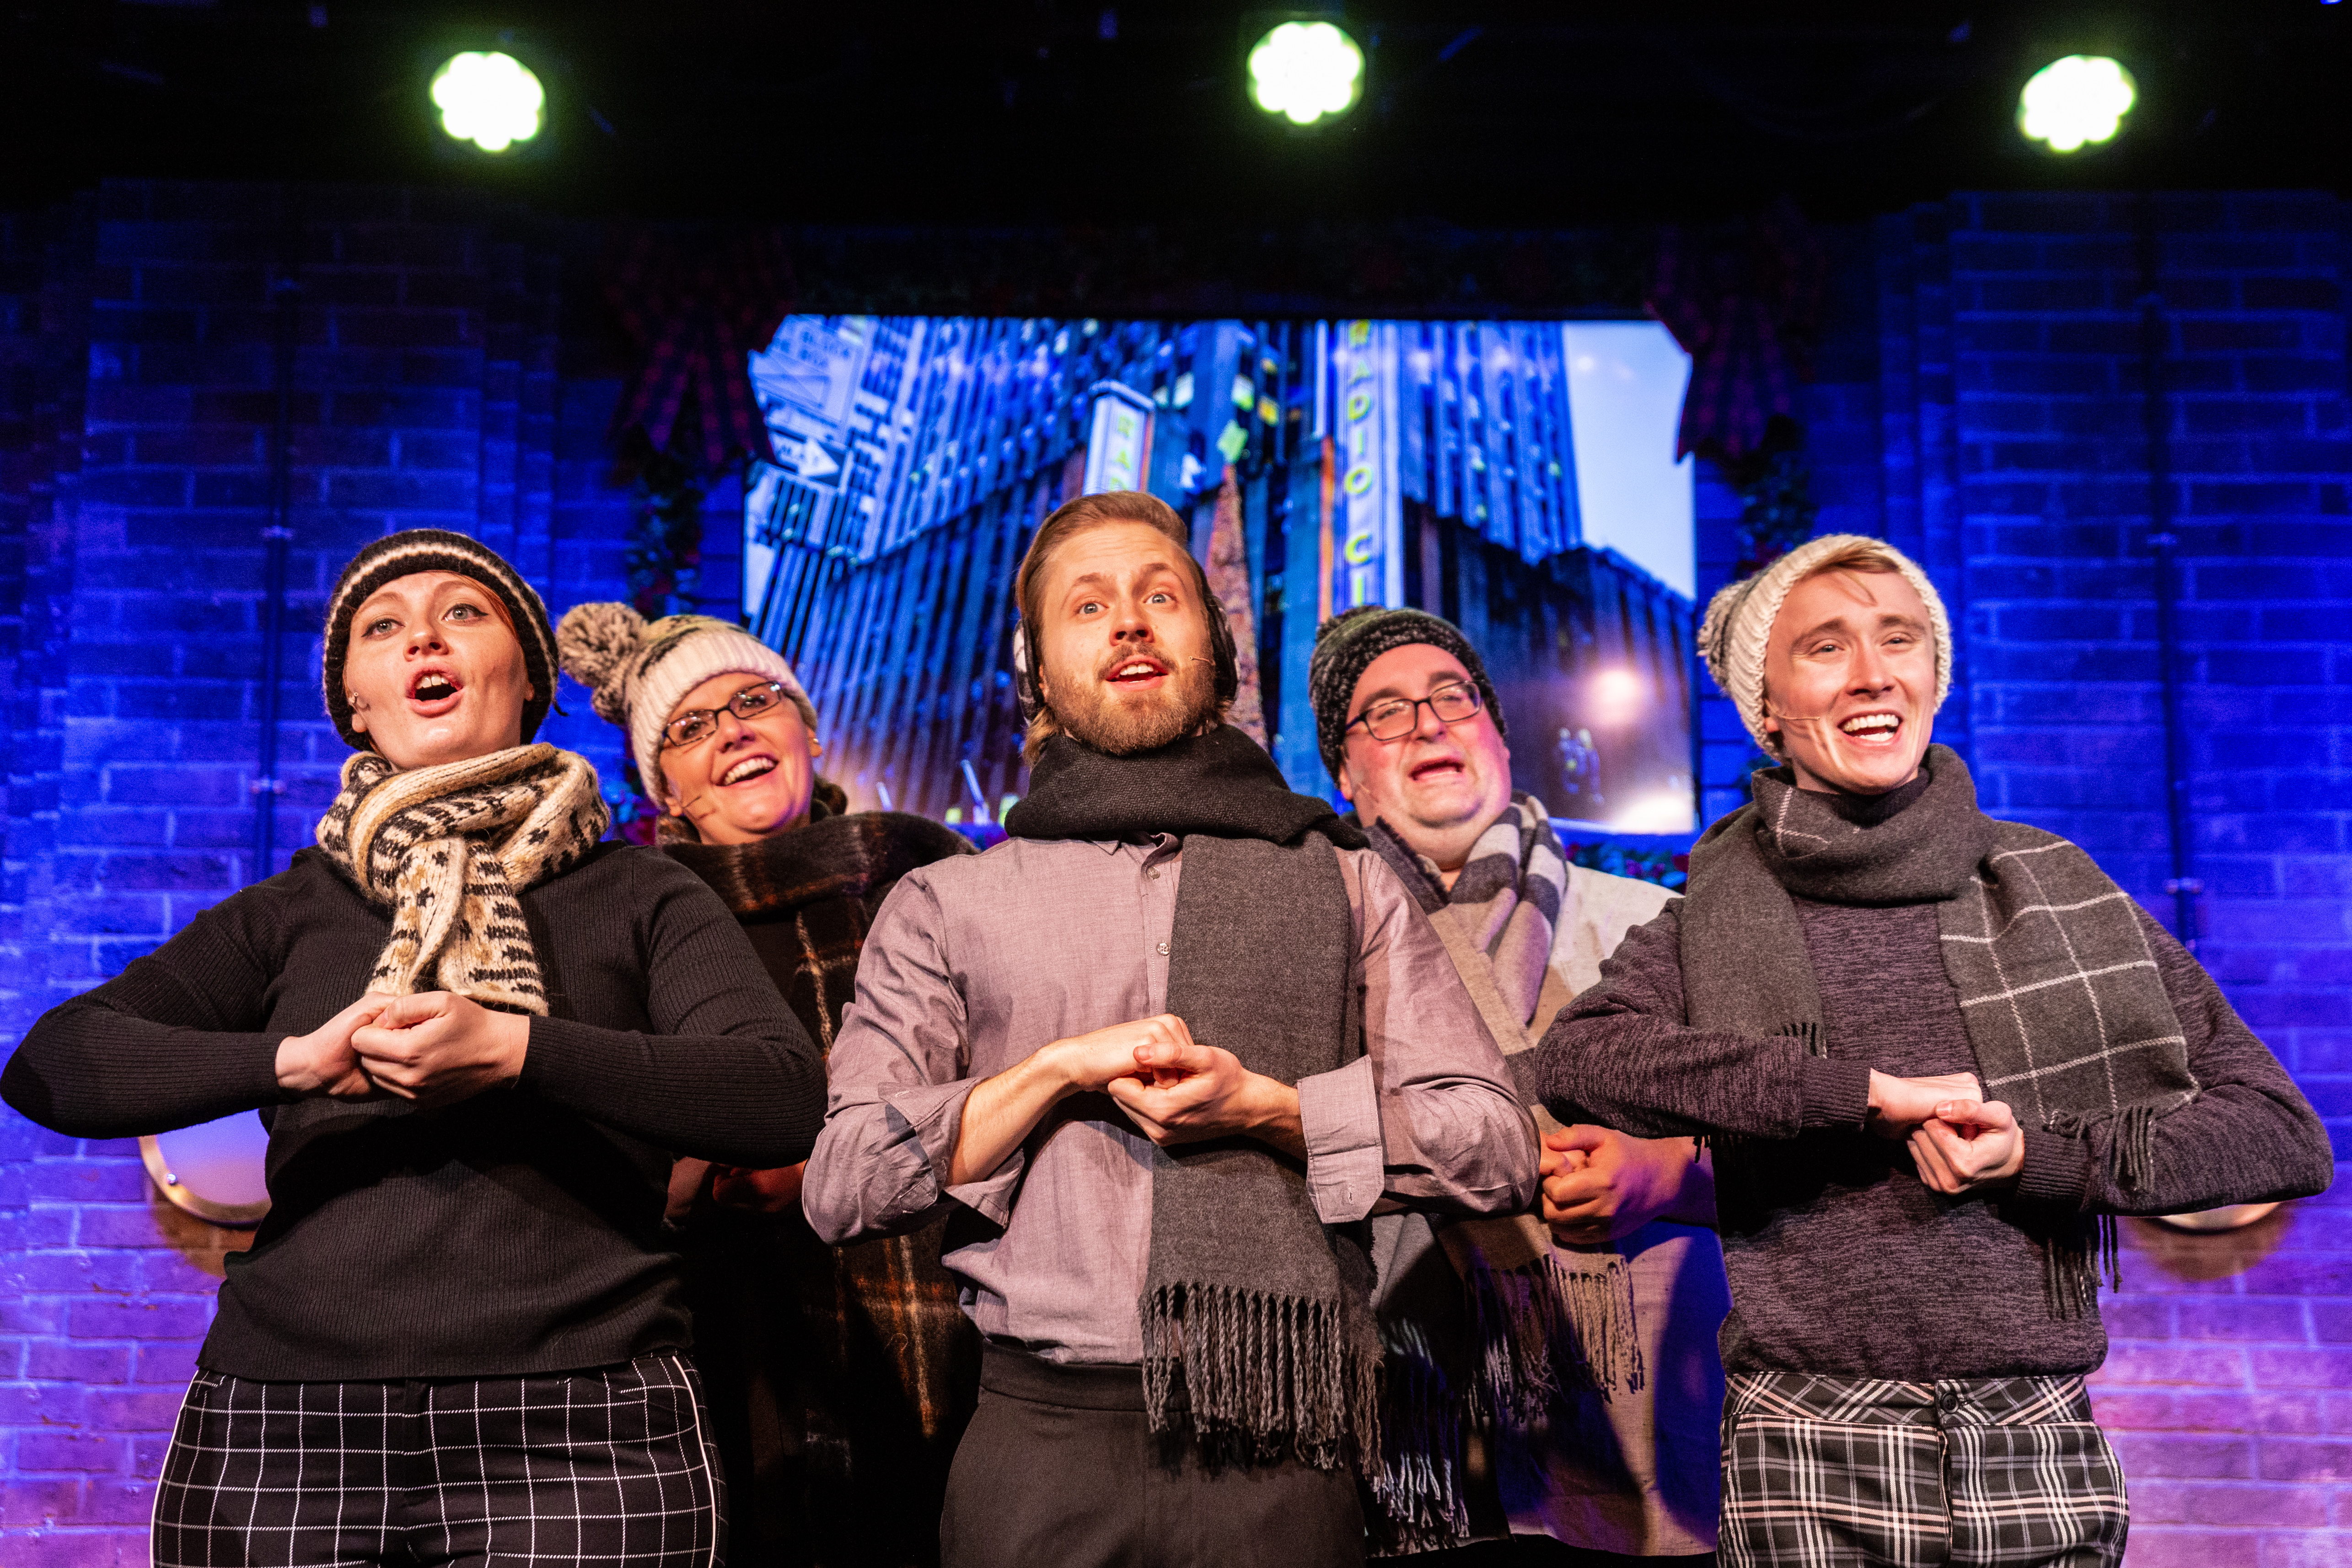 """Shelby Plummer (front row, from left), Henrik Blix, George Elrod, and (back row) Jess DeBacco and Rob Grabowski in """"Deck the Hallmark: A Greeting Card ChannelOriginal"""" at Second City."""